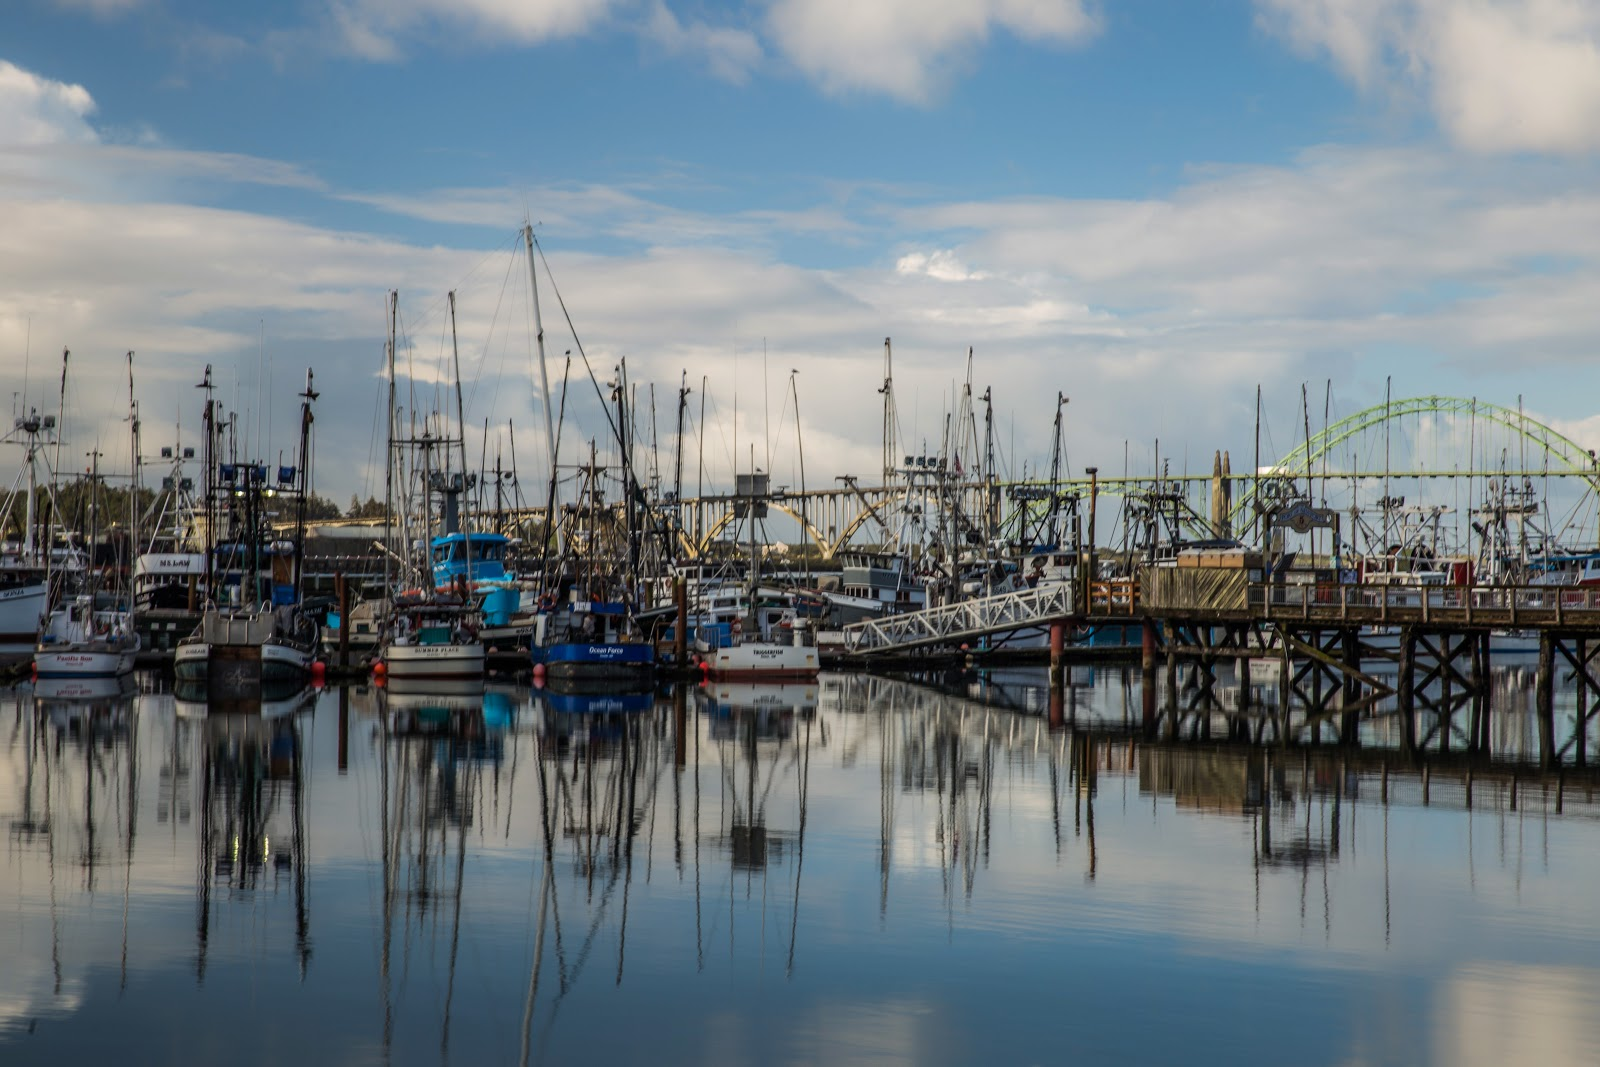 Fishing boats along the dock in Newport's Yaquina Bay